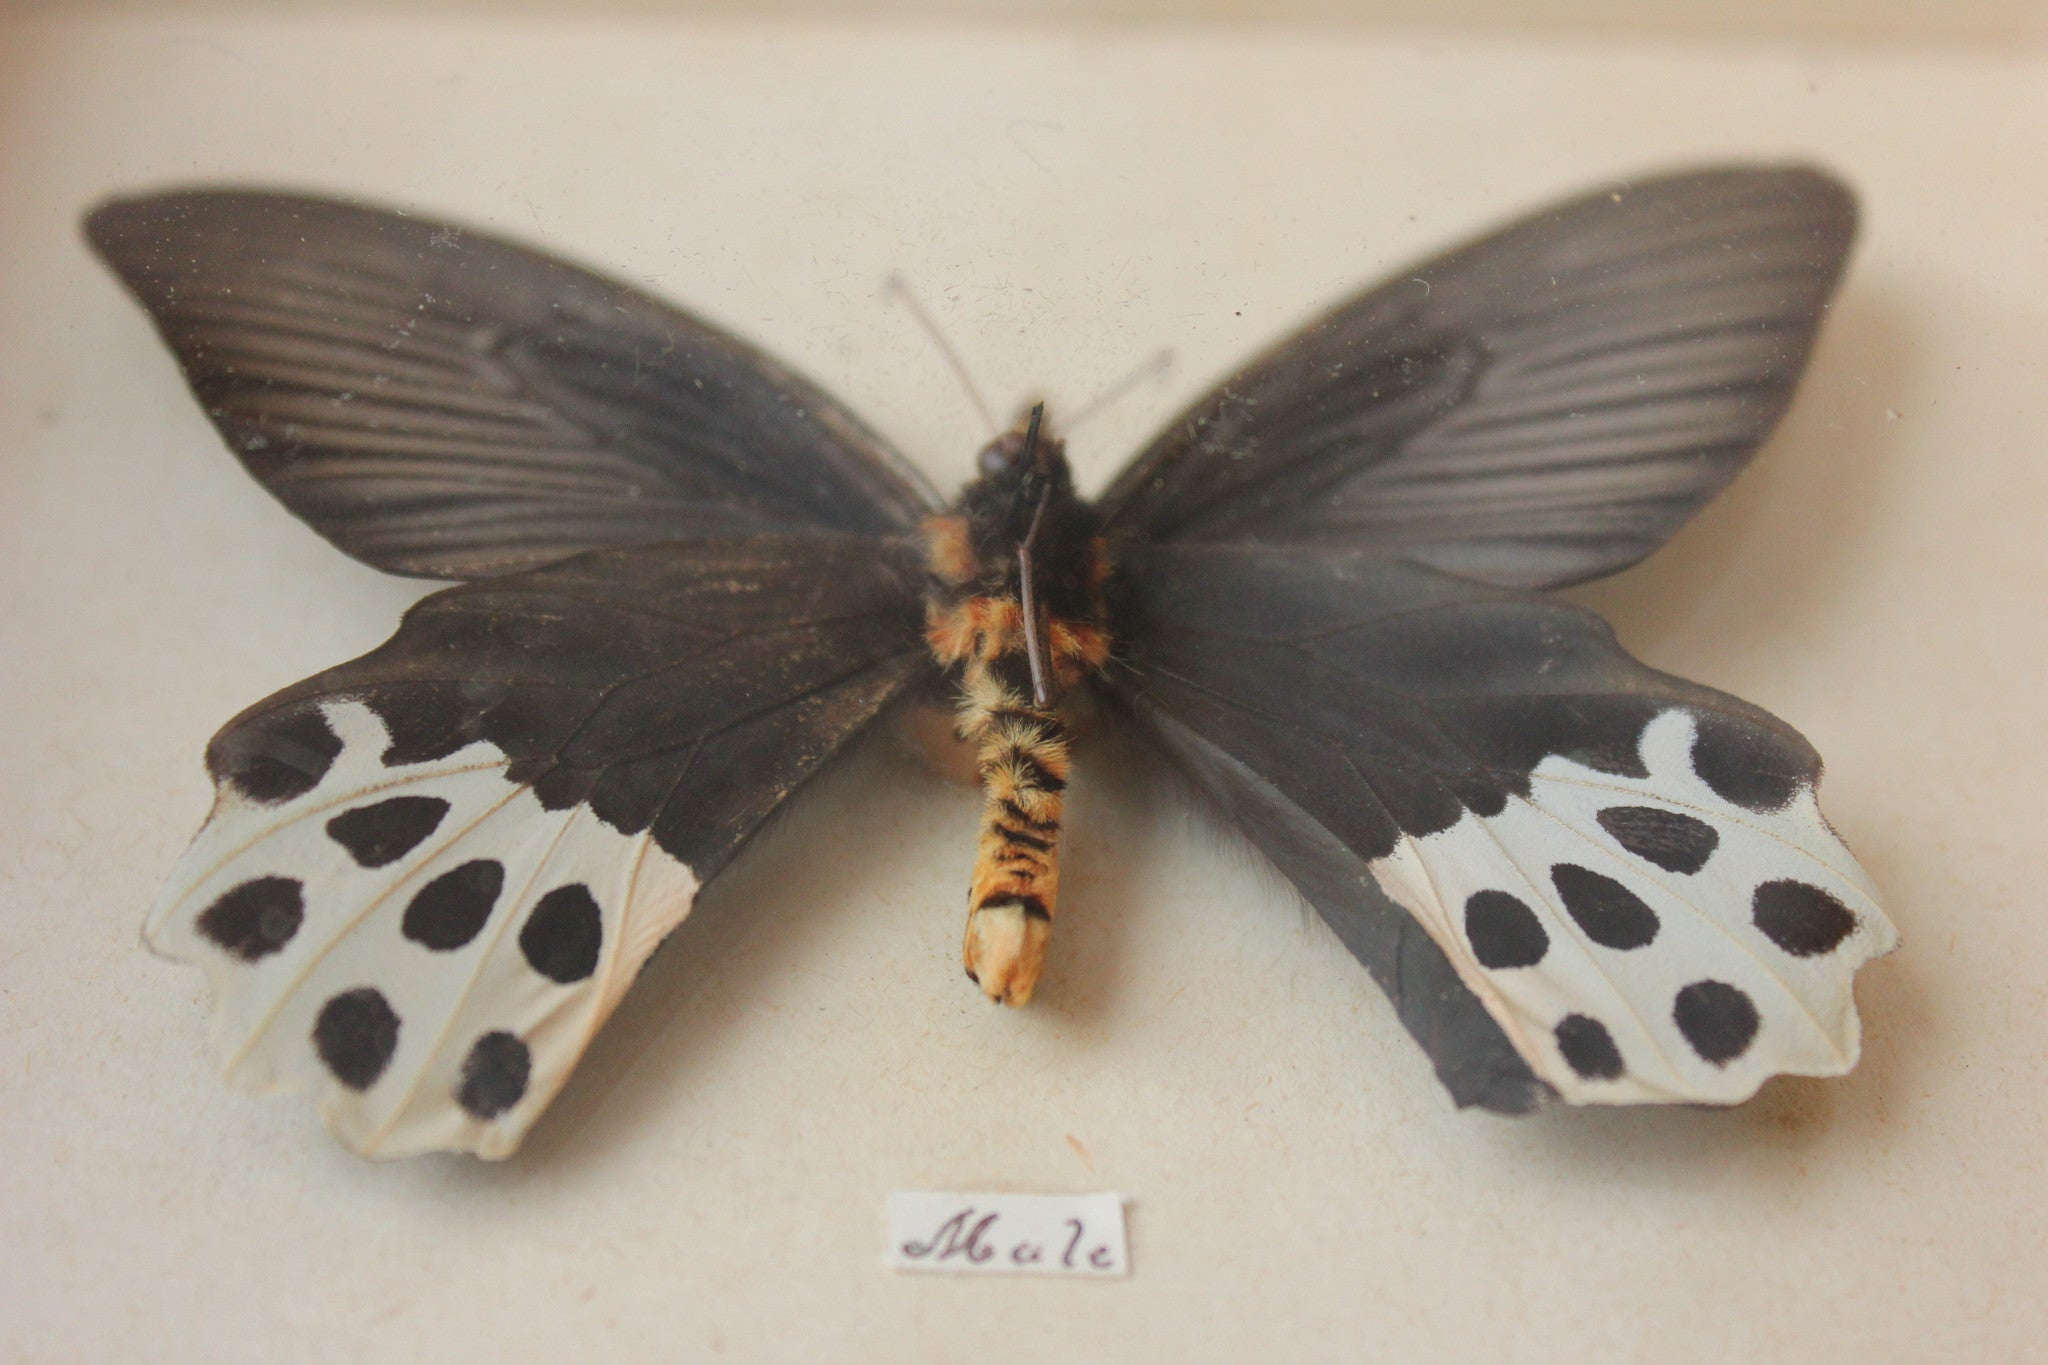 A Mid 20thC Lepidopterist's Shadow Boxed Display of a Pair of Papilio Horishanus Swallowtail Butterflies